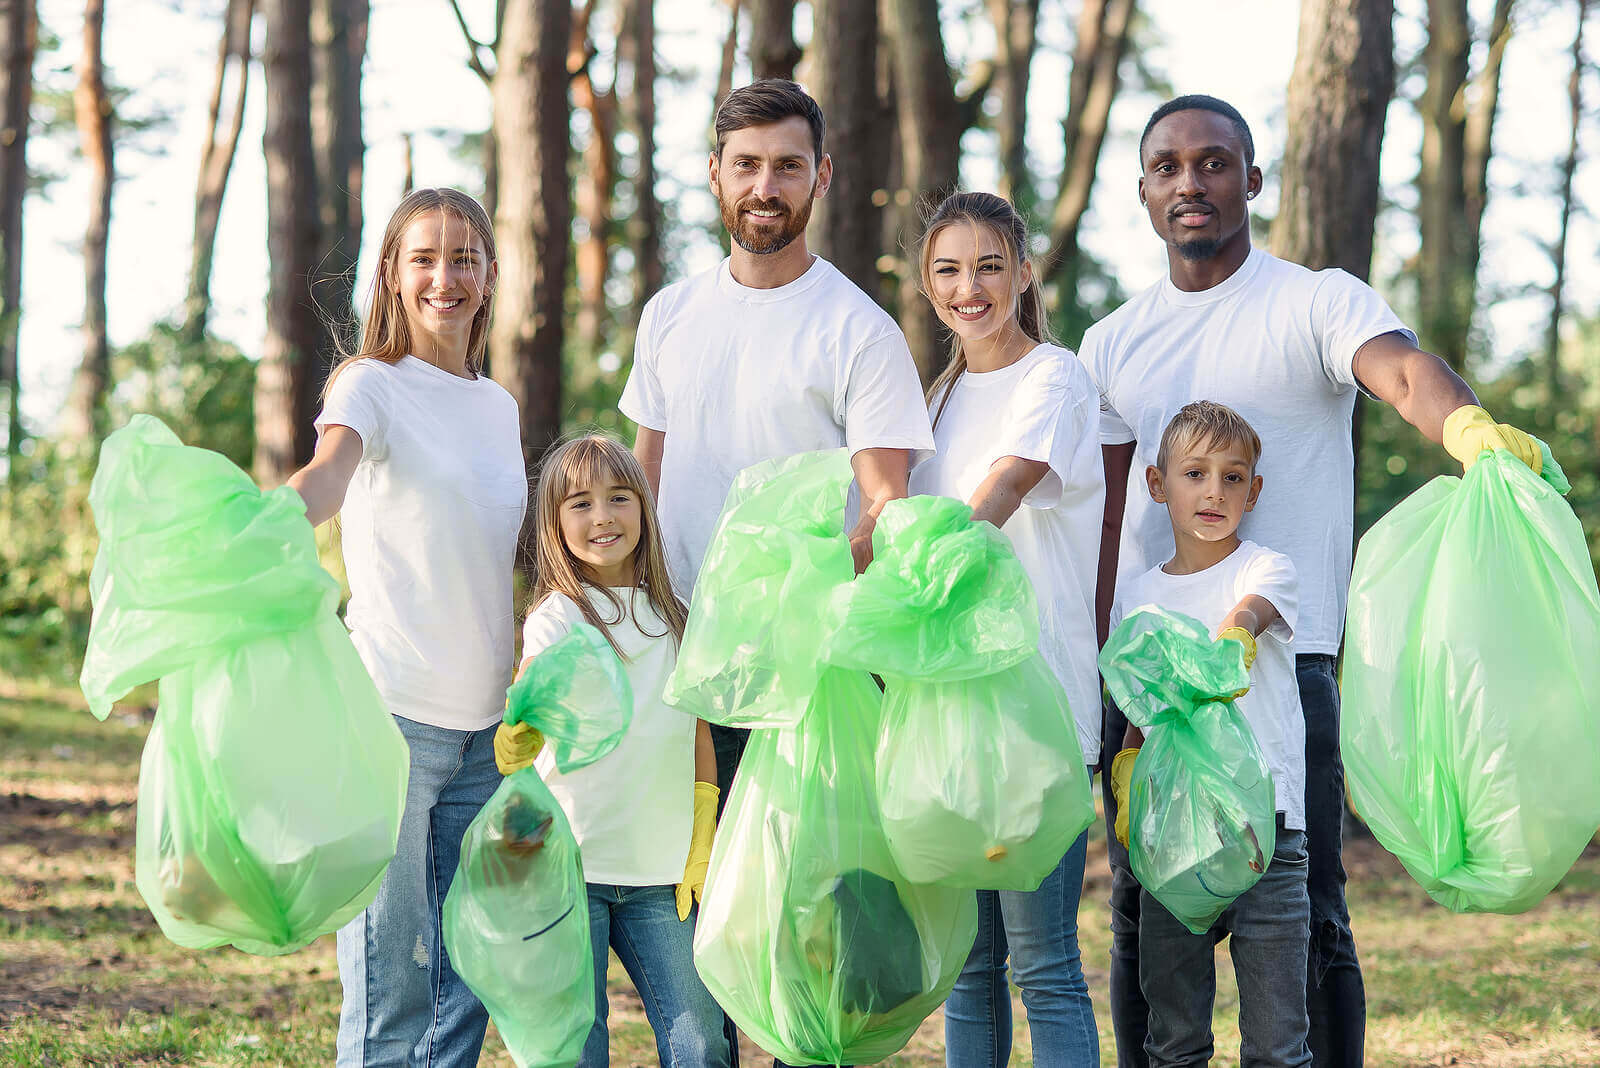 A group of volunteer litter pickers holding green bags of rubbish